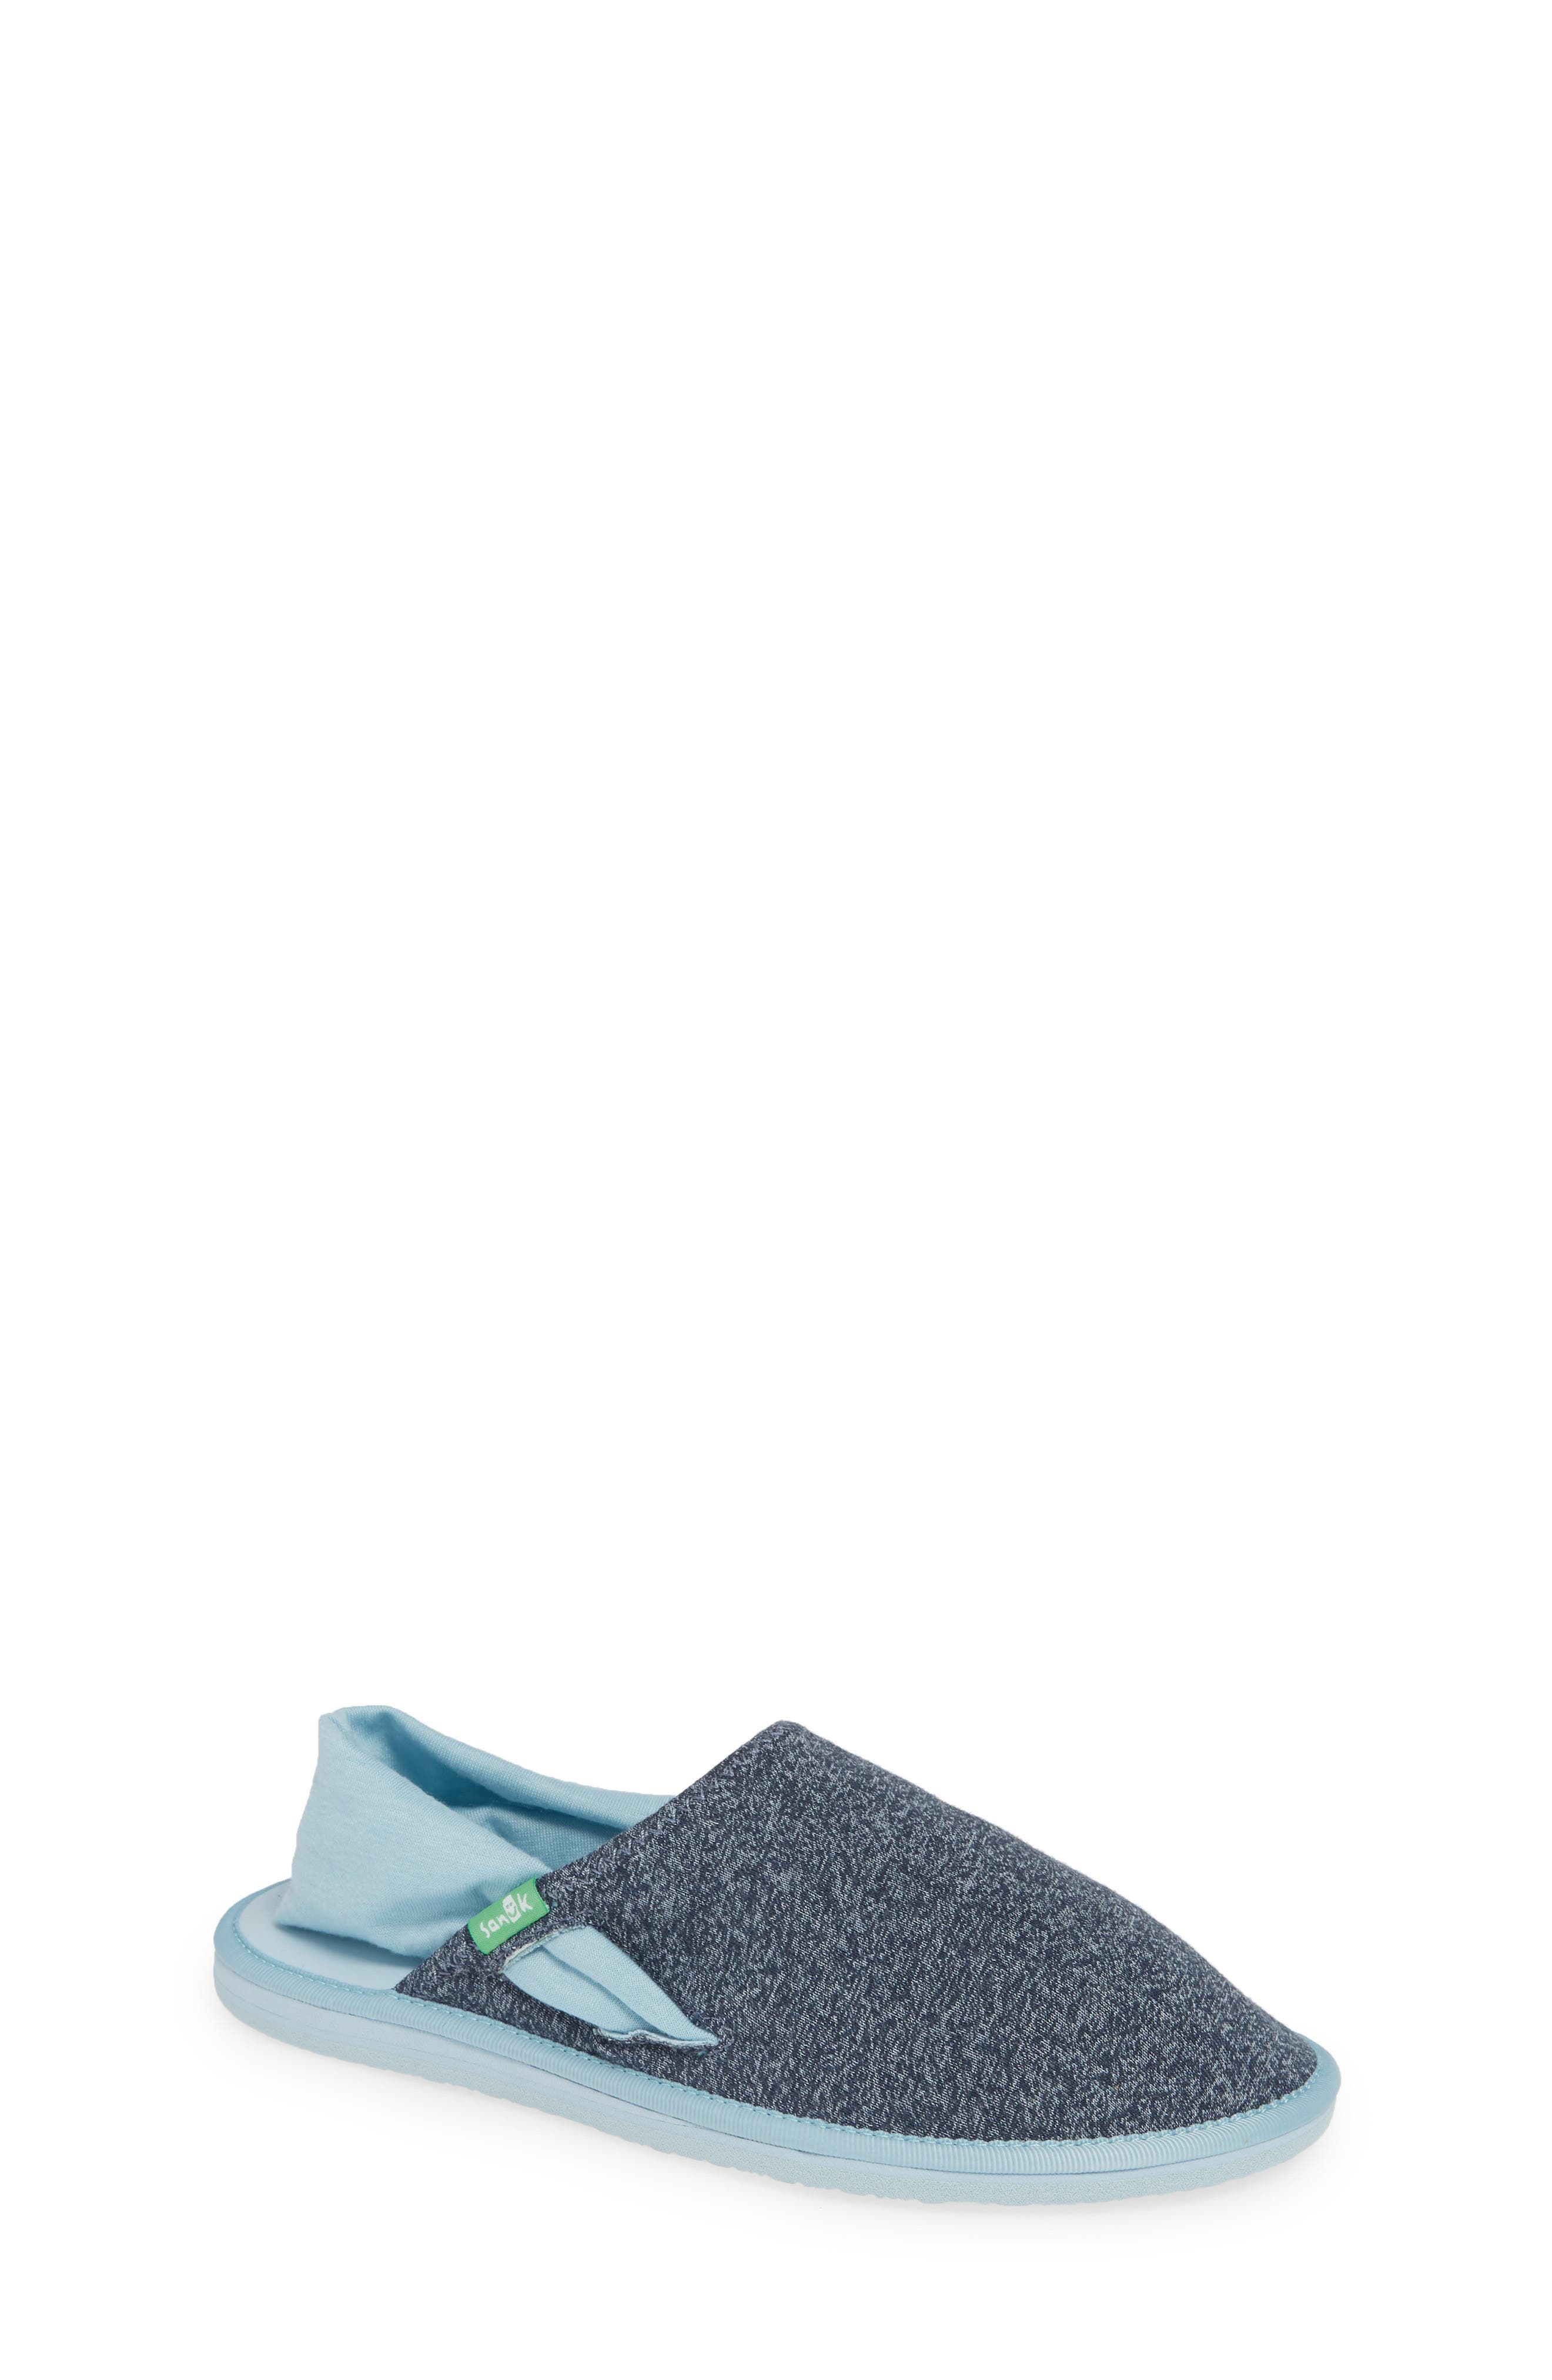 Lil Yoga Sling Cruz Slip-On,                             Main thumbnail 1, color,                             HEATHER OUTERSPACE